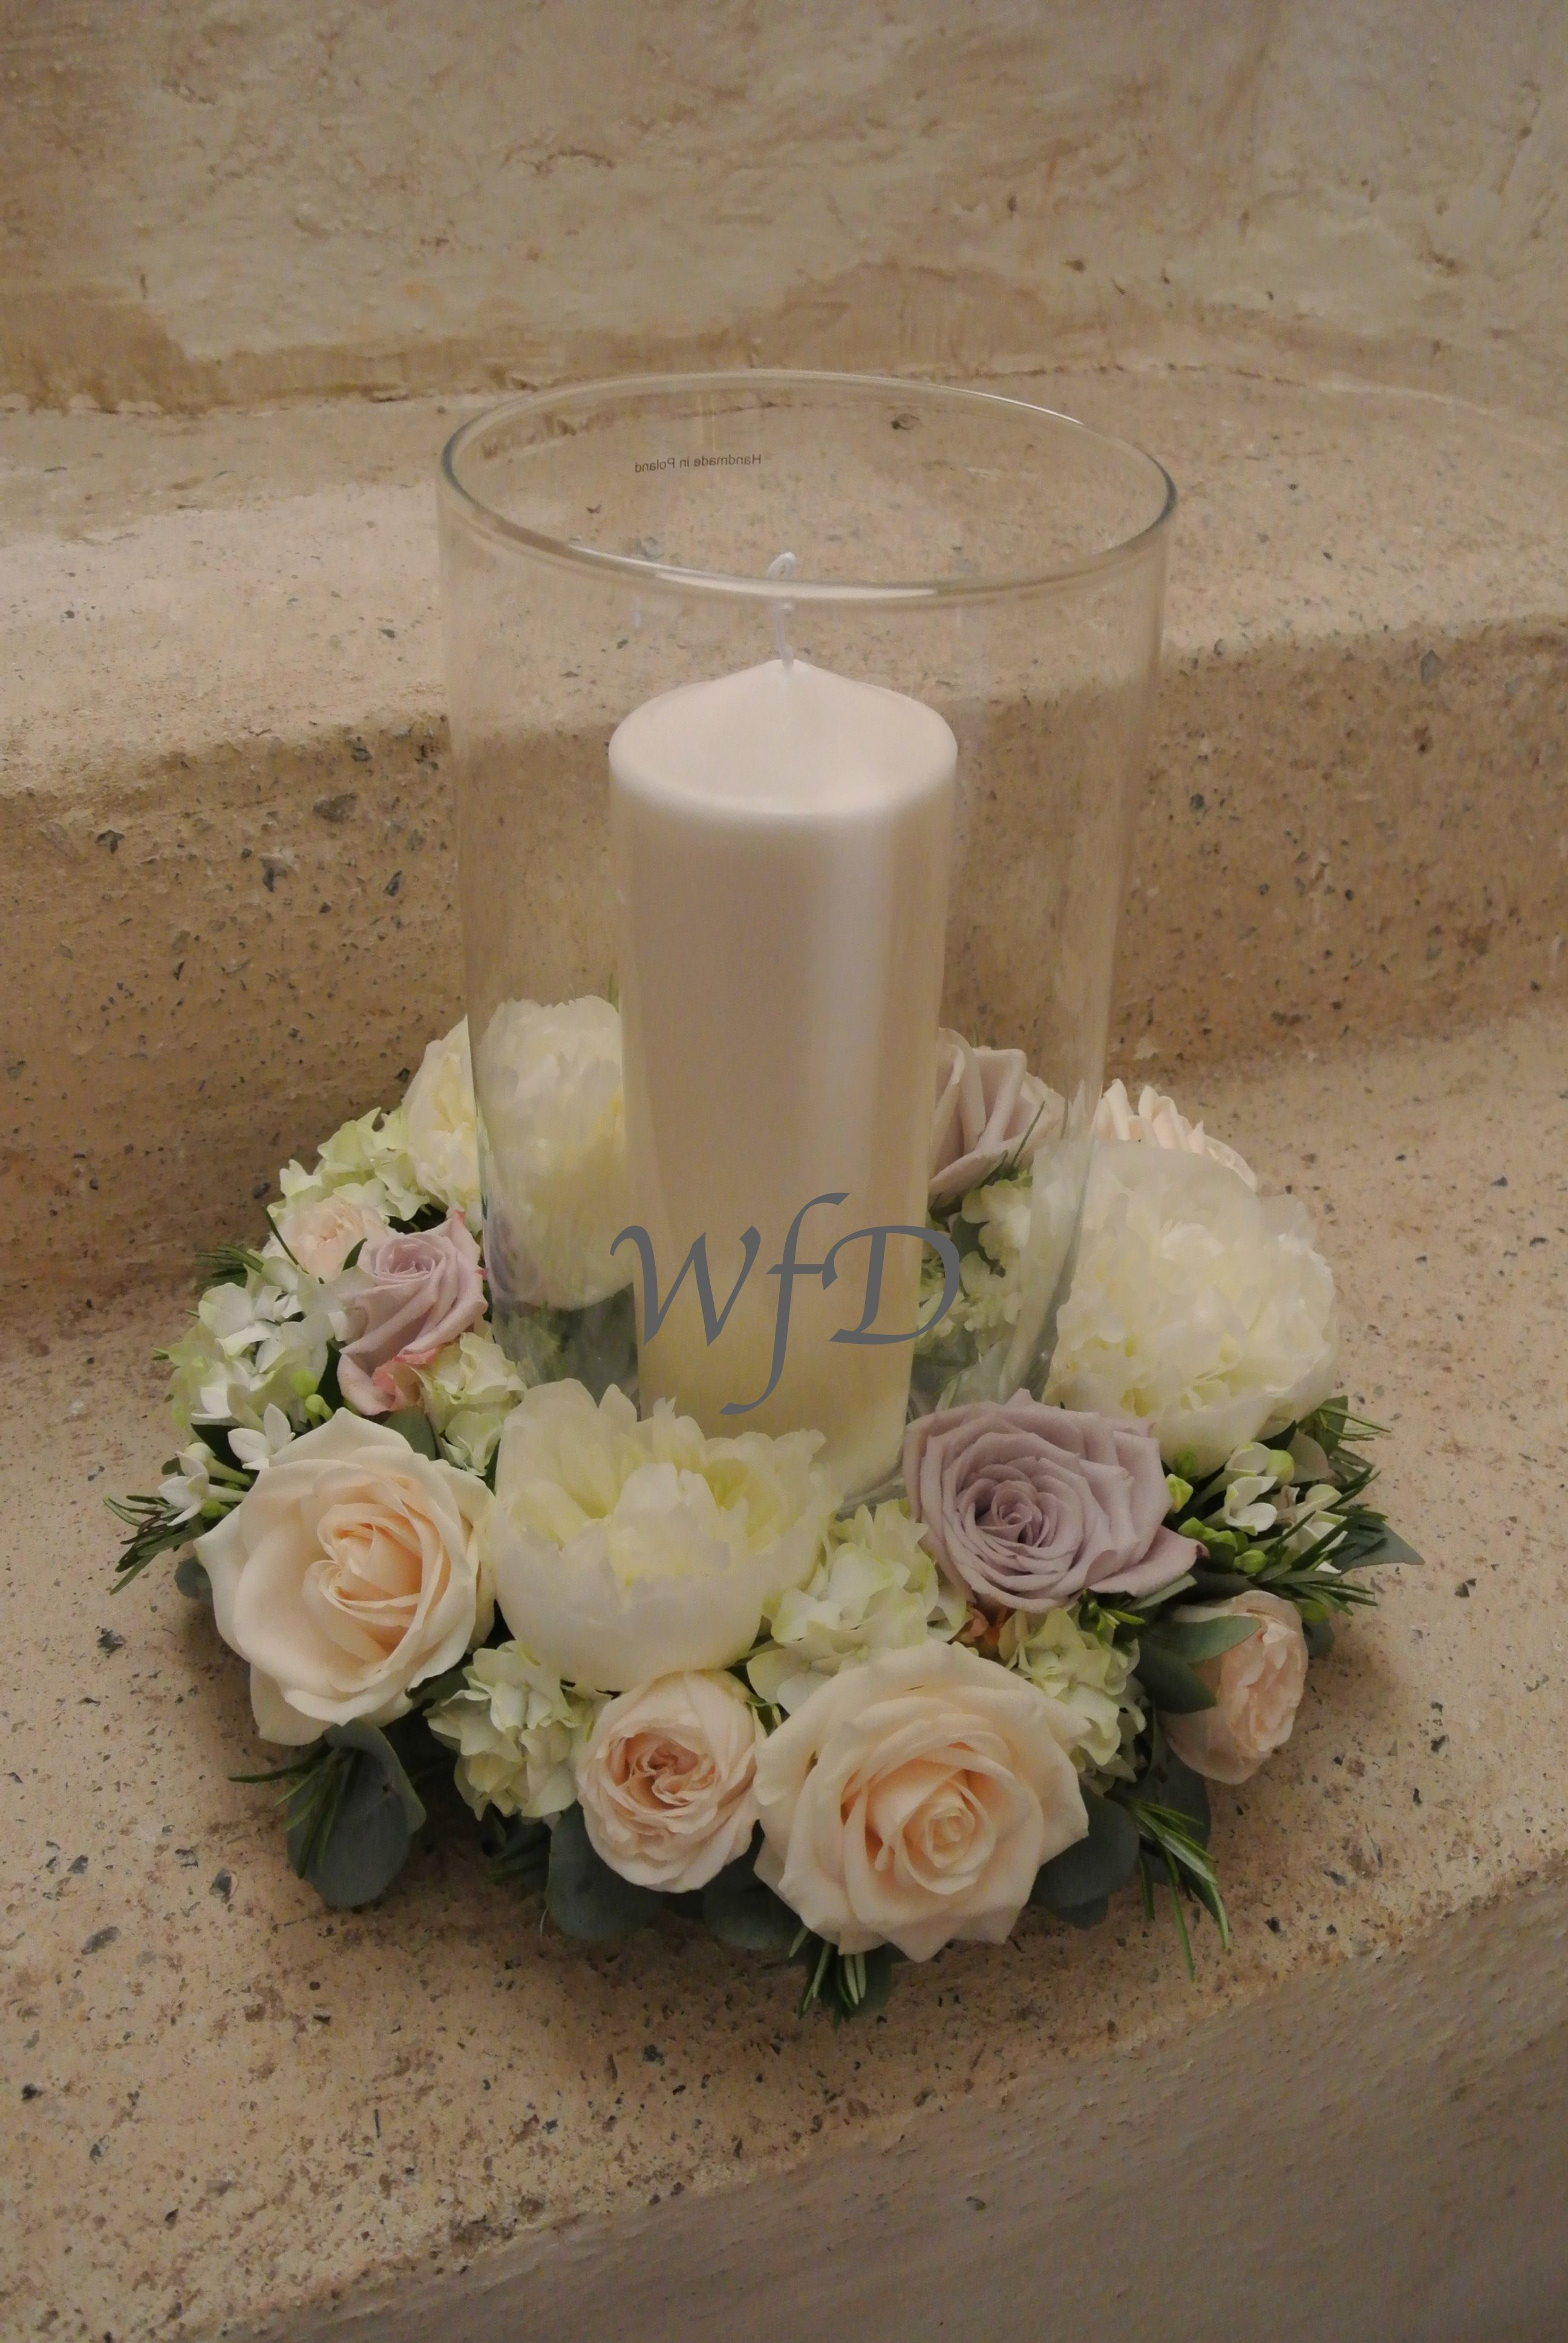 Hurricane vase with flower ring torre abbey wedding torquay hurricane vase with flower ring torre abbey wedding torquay reviewsmspy